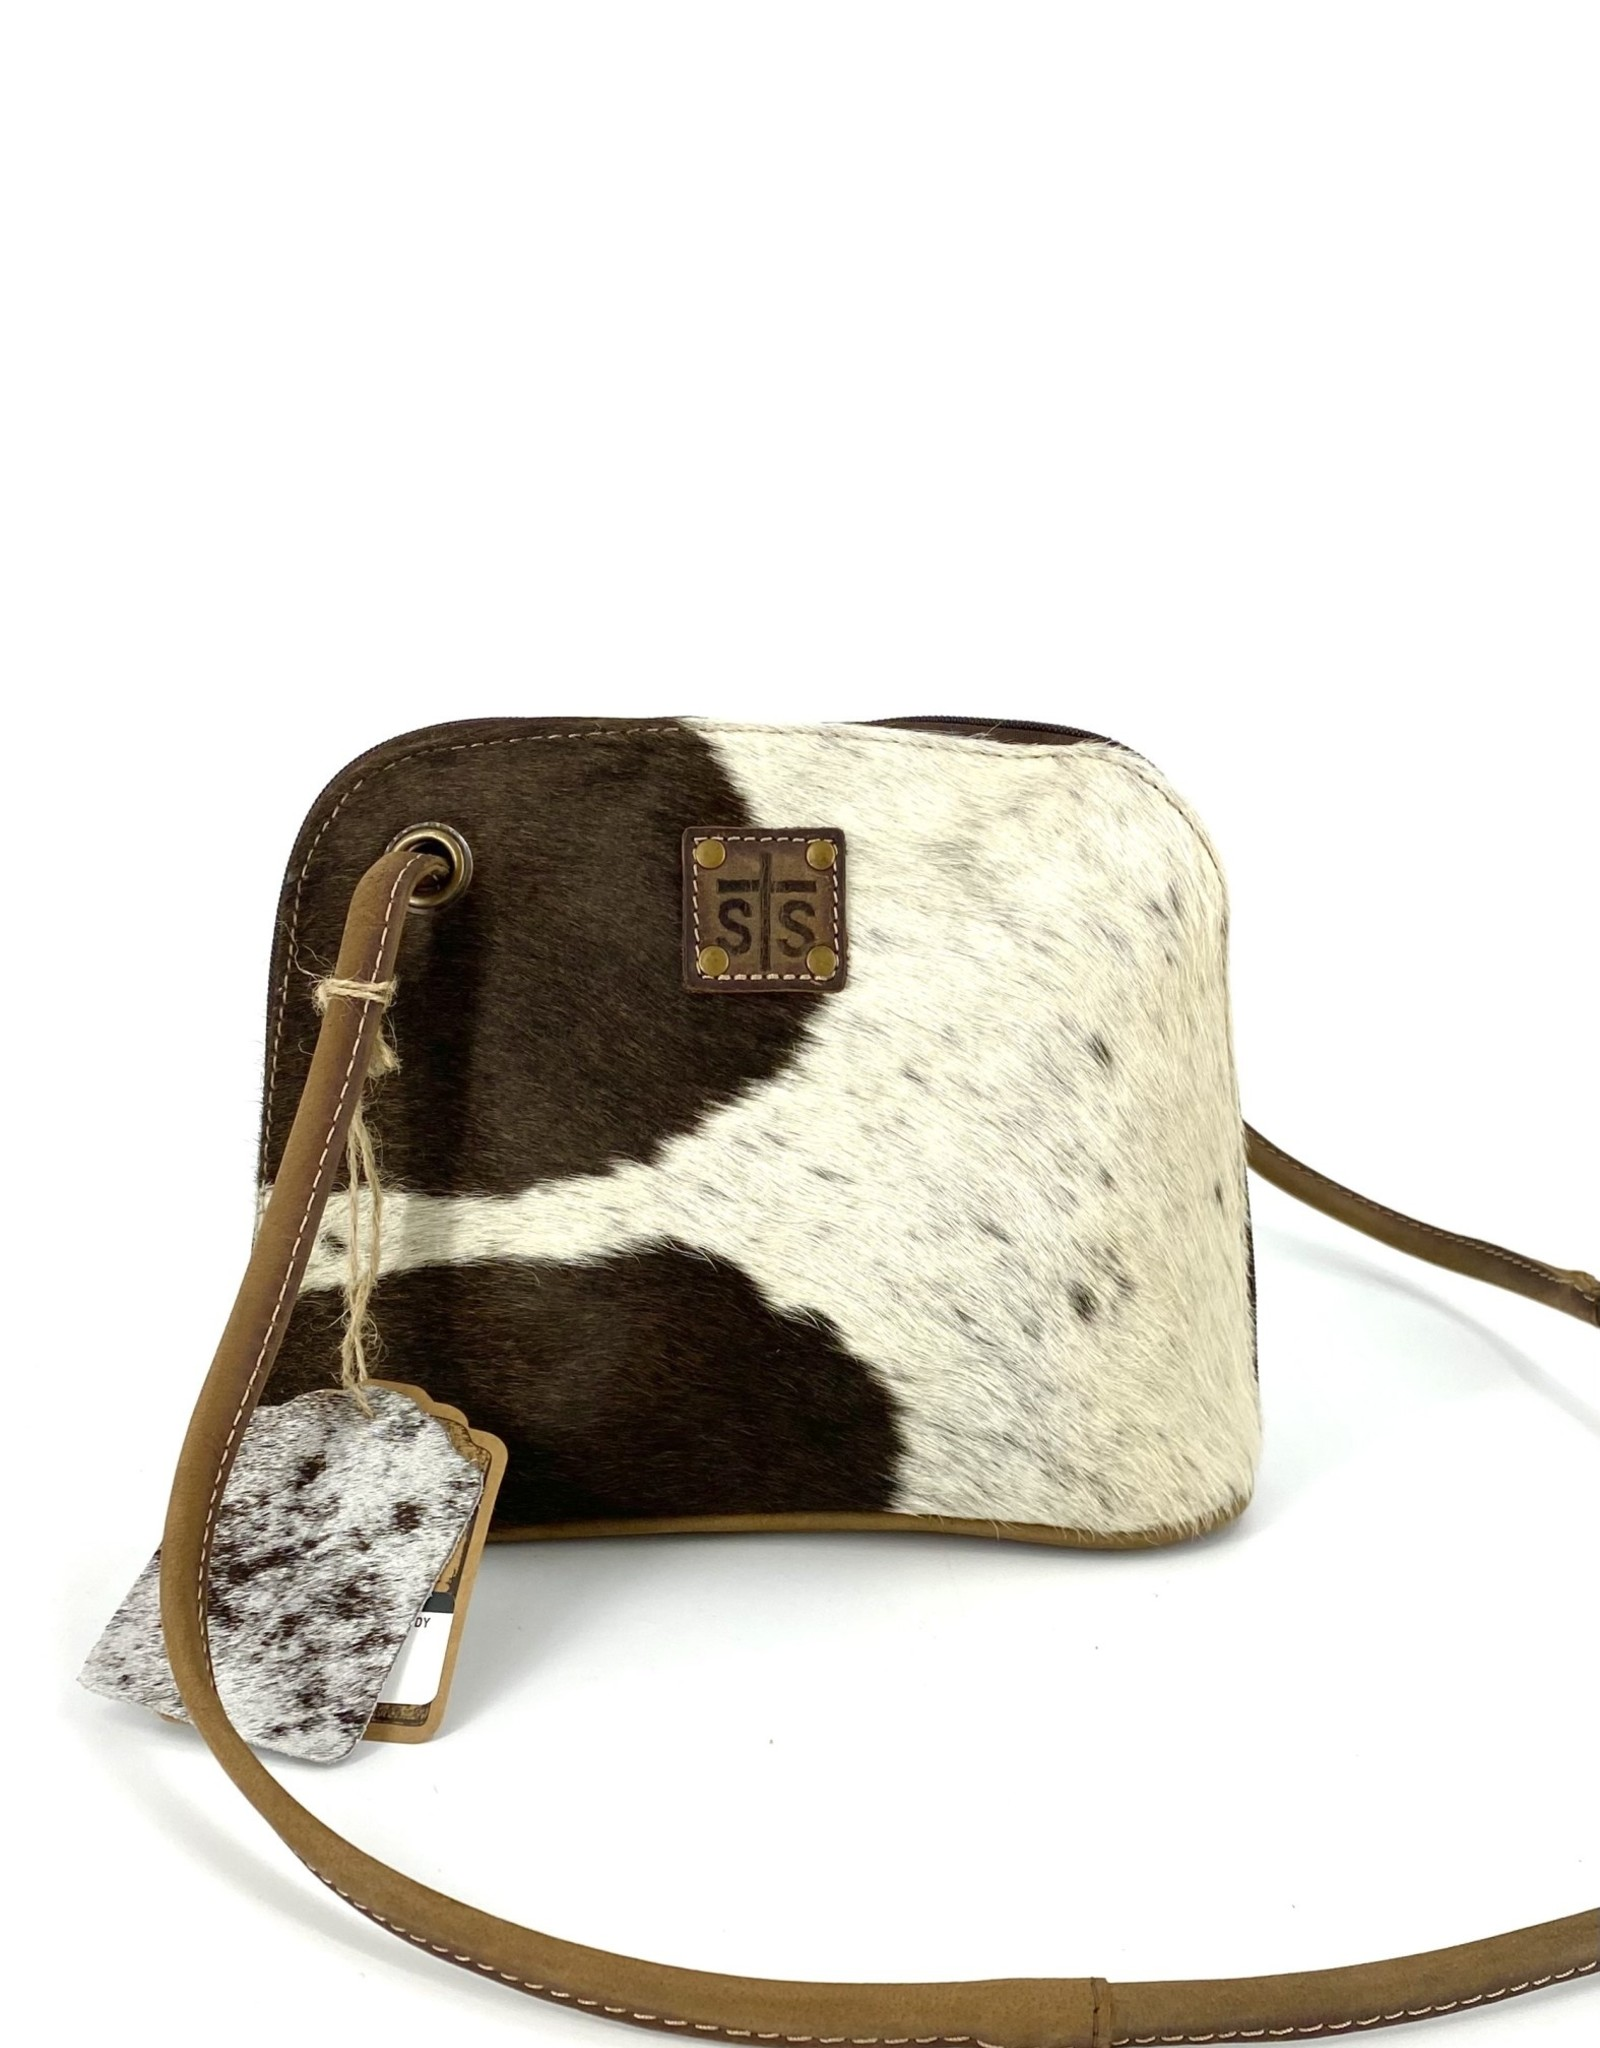 PURSE STS35757 COWHIDE CROSSBODY CLASSIC LEATHER CONCEALED CARRY